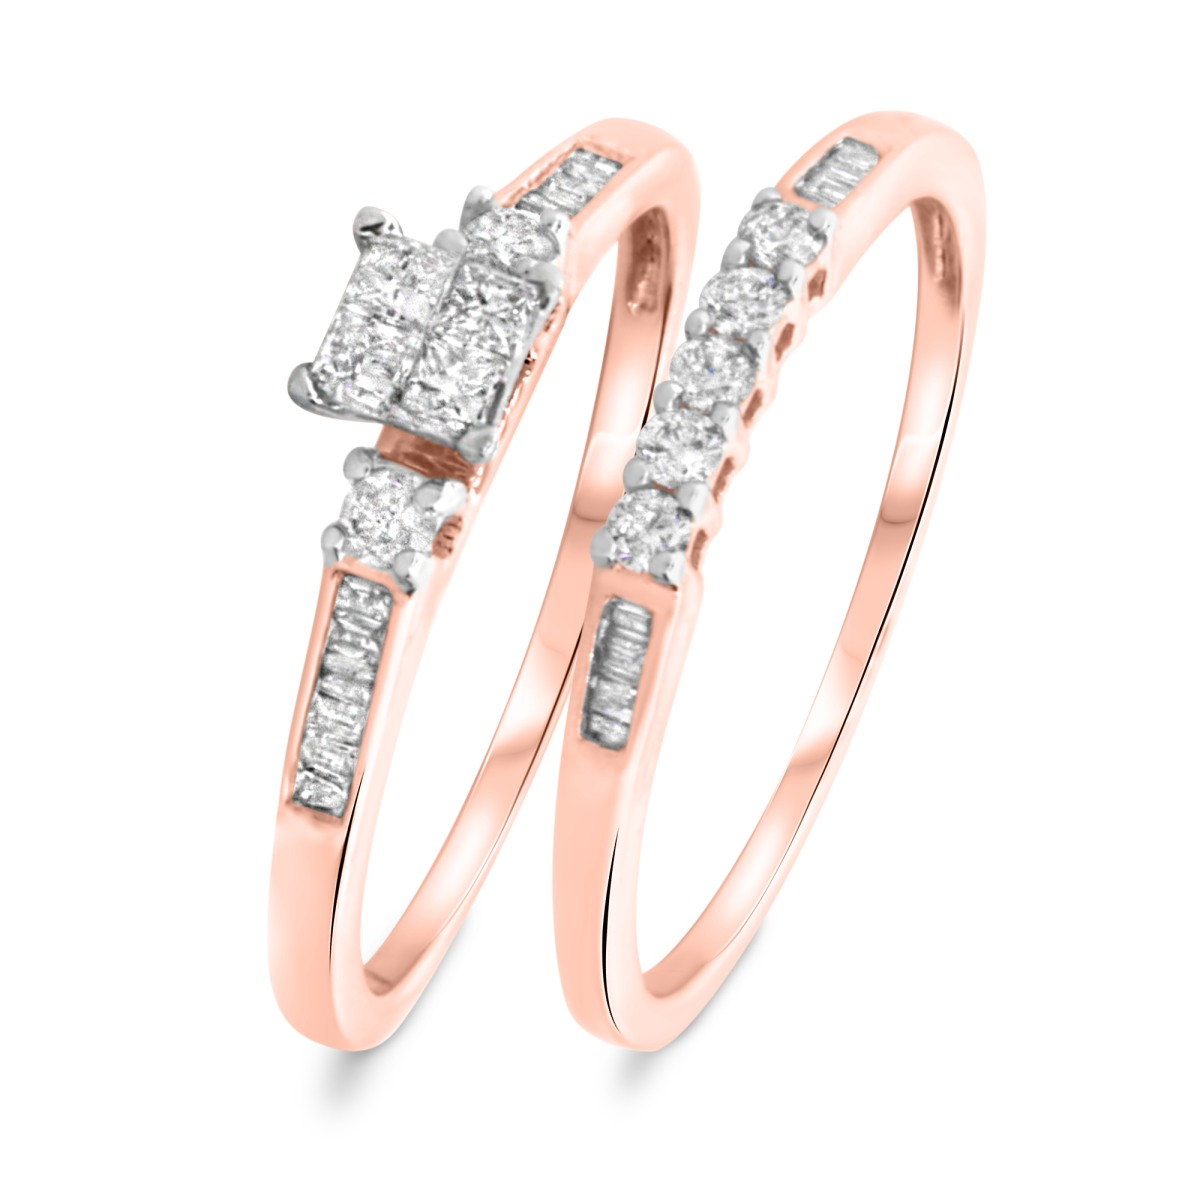 3/8 CT. T.W. Princess, Round, Baguette Cut Diamond Ladies Bridal Wedding Ring Set 10K Rose Gold